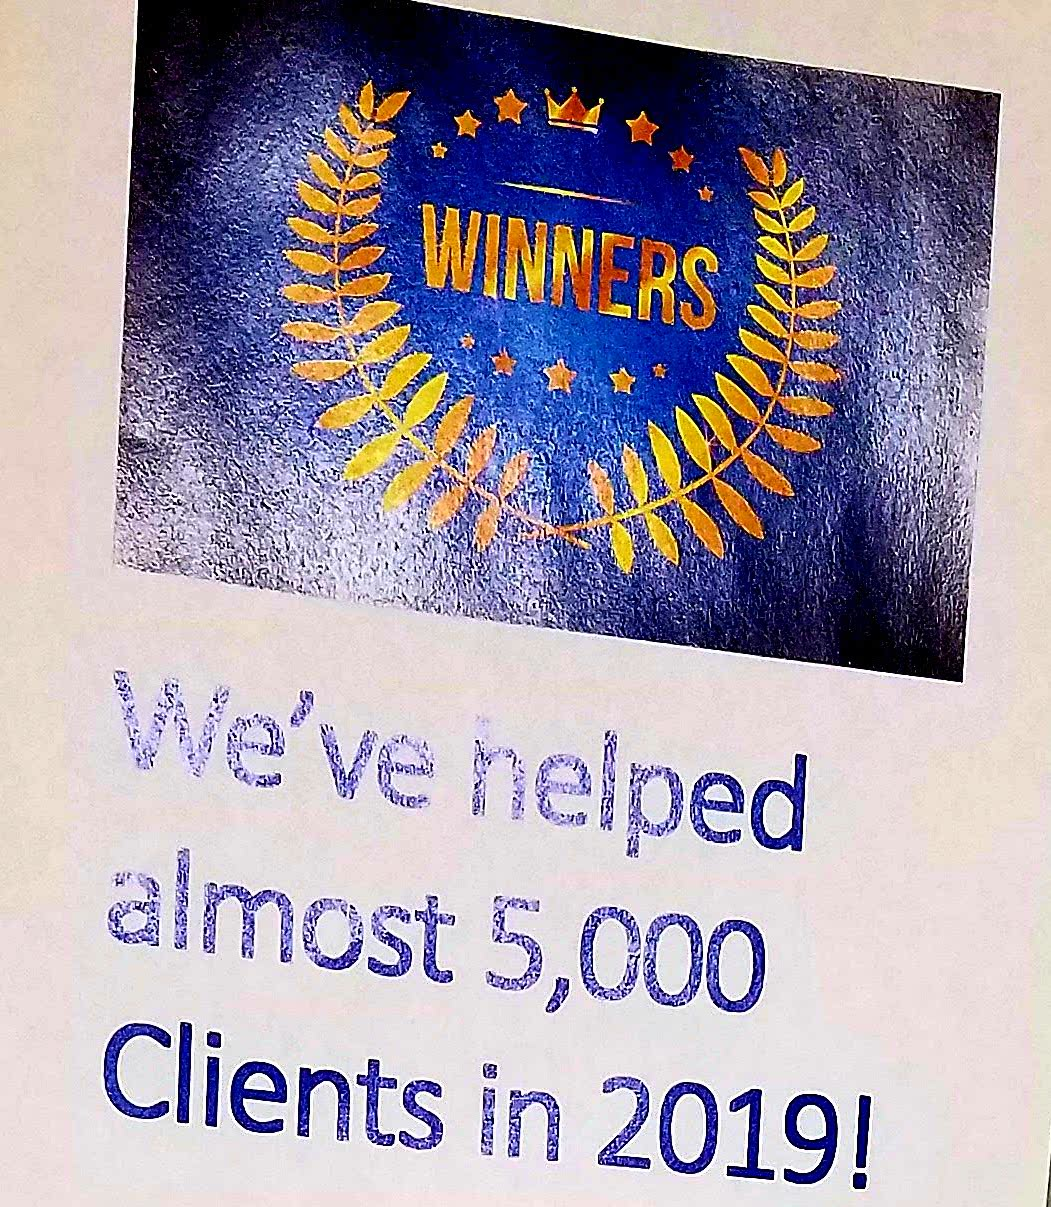 We've helped almost 5000 clients in 2019!